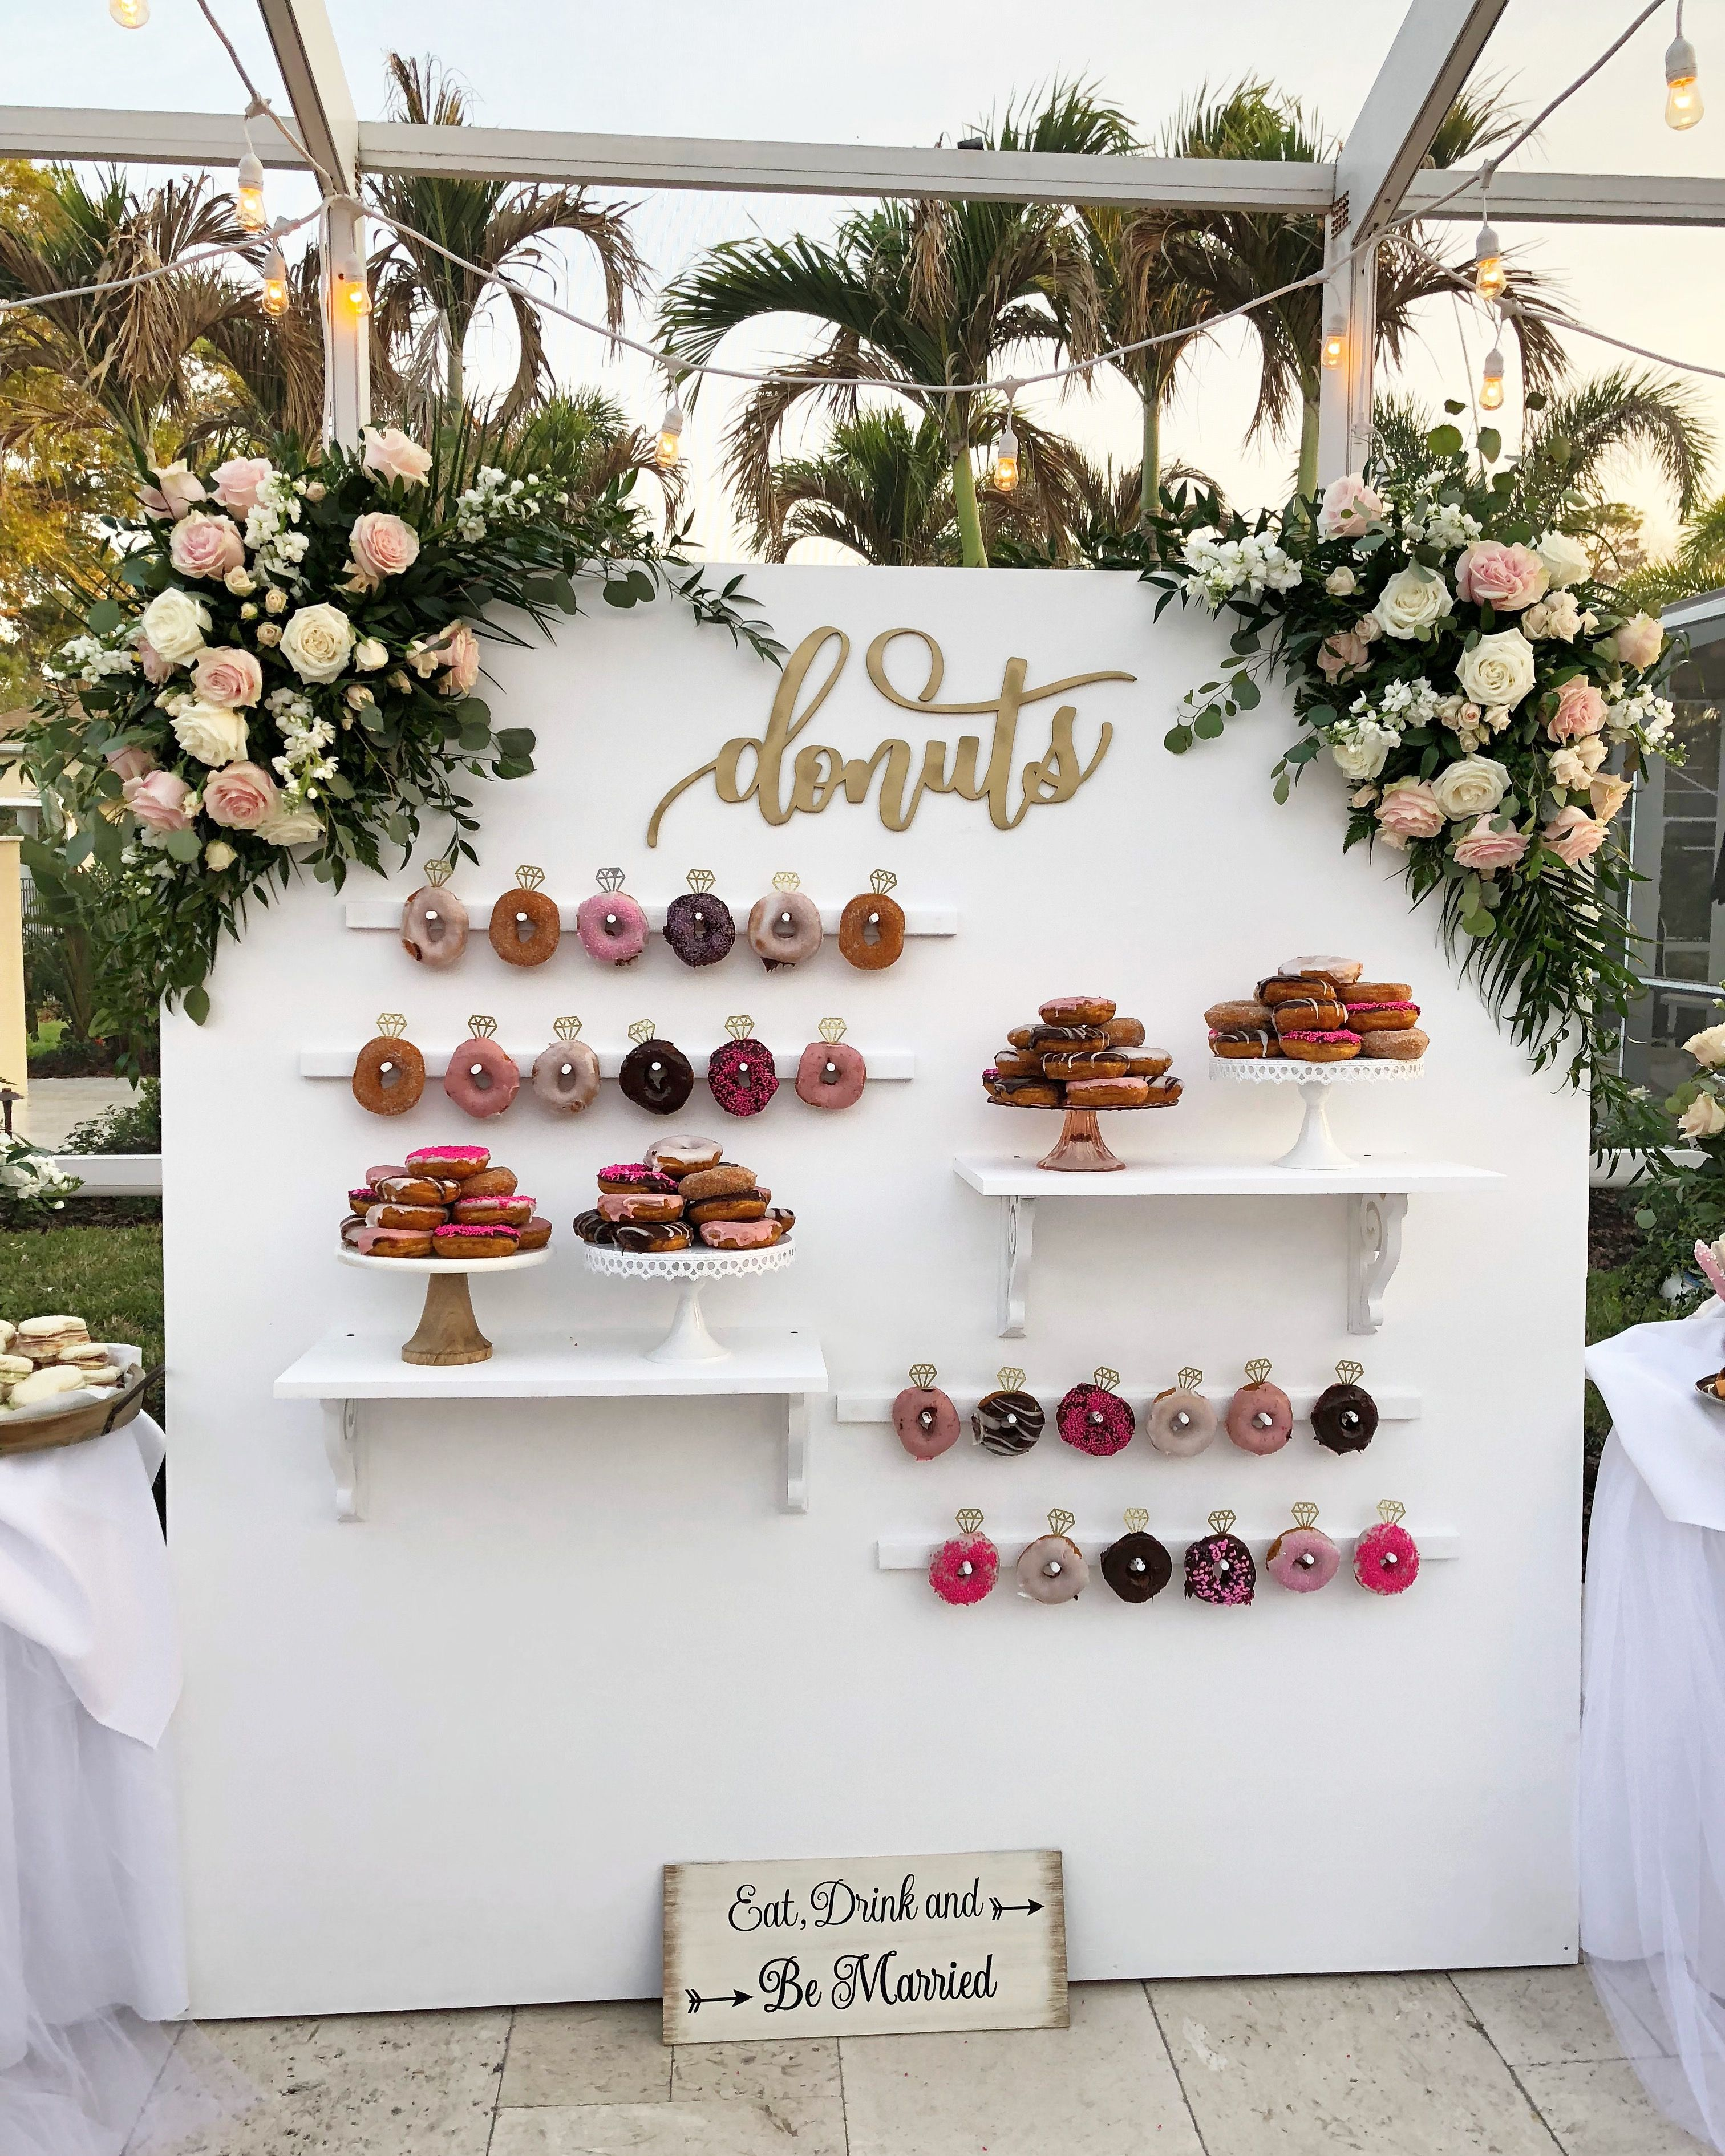 7 Popular Wedding Trends For 2019 According To Pinterest Donut Wall Wedding Wedding Donuts Wedding Trends